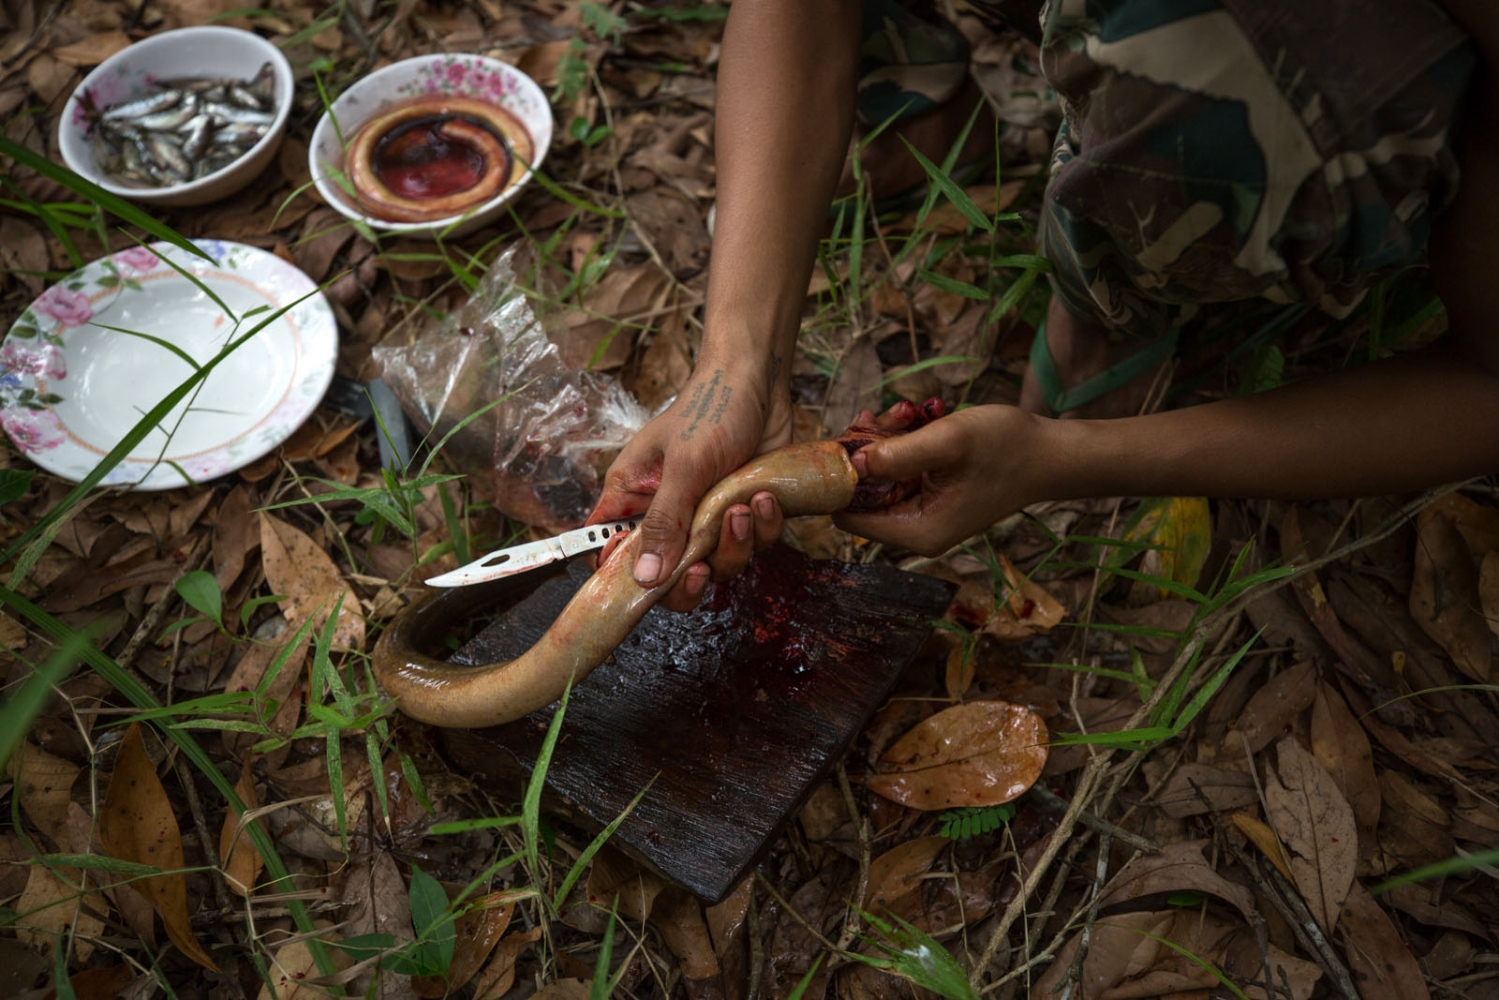 A forest ranger guts an eel caught by the rangers in a small pond to supplement their food supply. Ta Praya National Park, Sa Kaew Province - June 2018